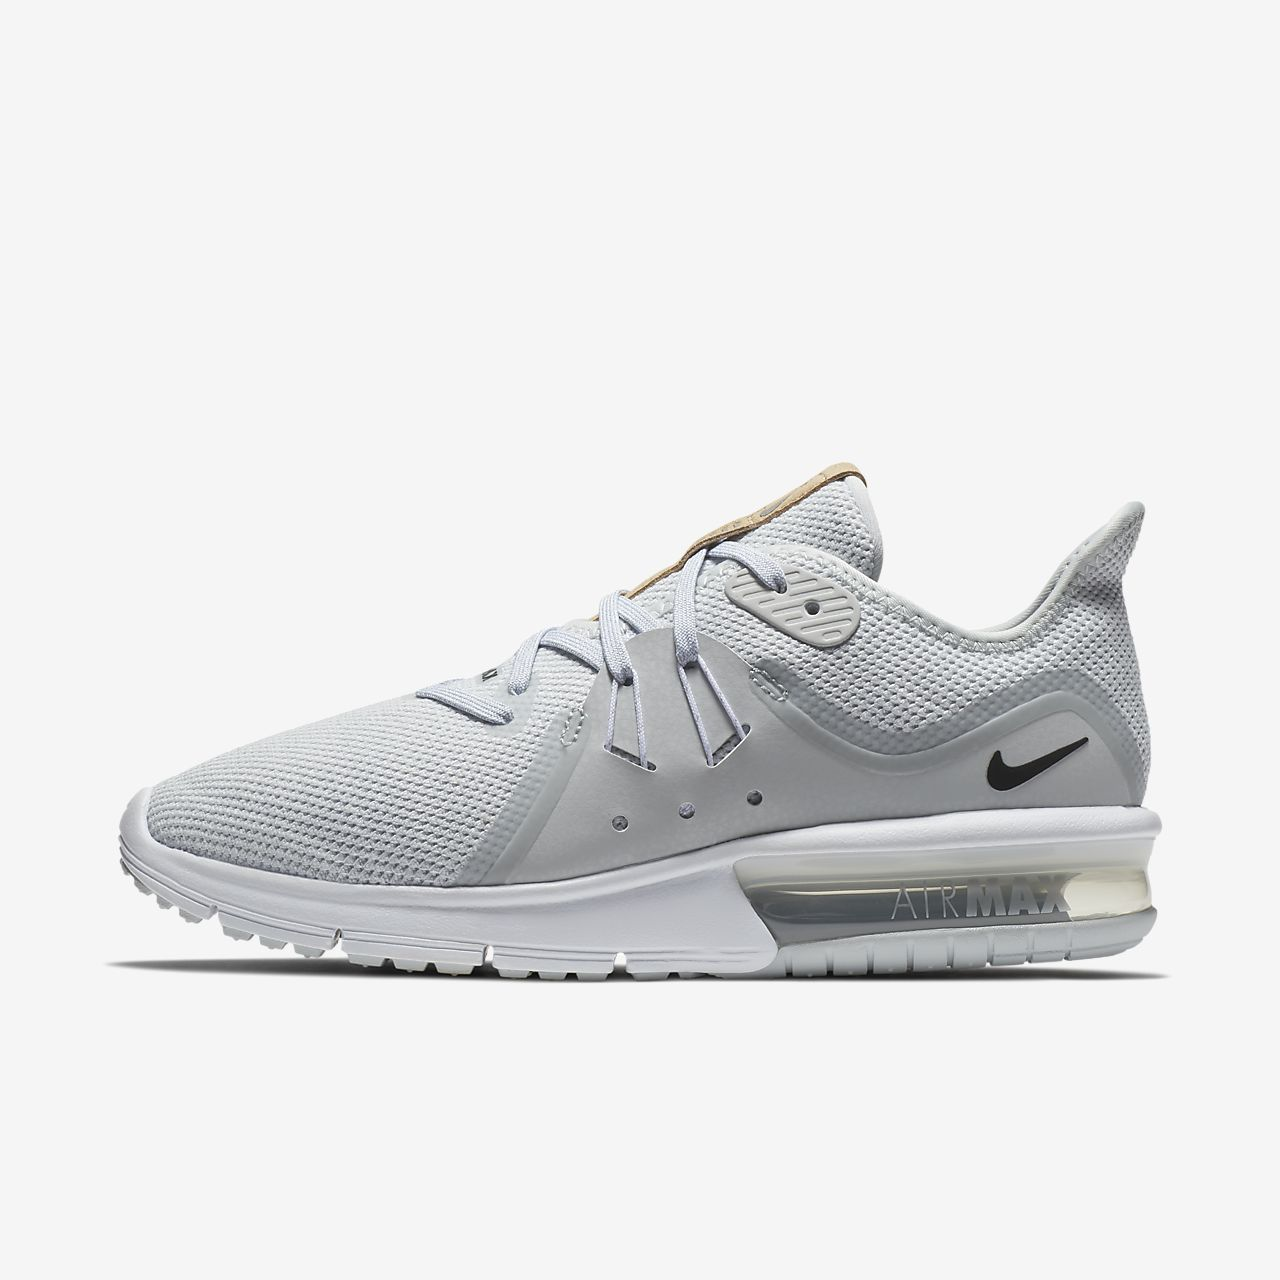 buy popular 7e0e3 58f85 ... Nike Air Max Sequent 3 Women s Shoe